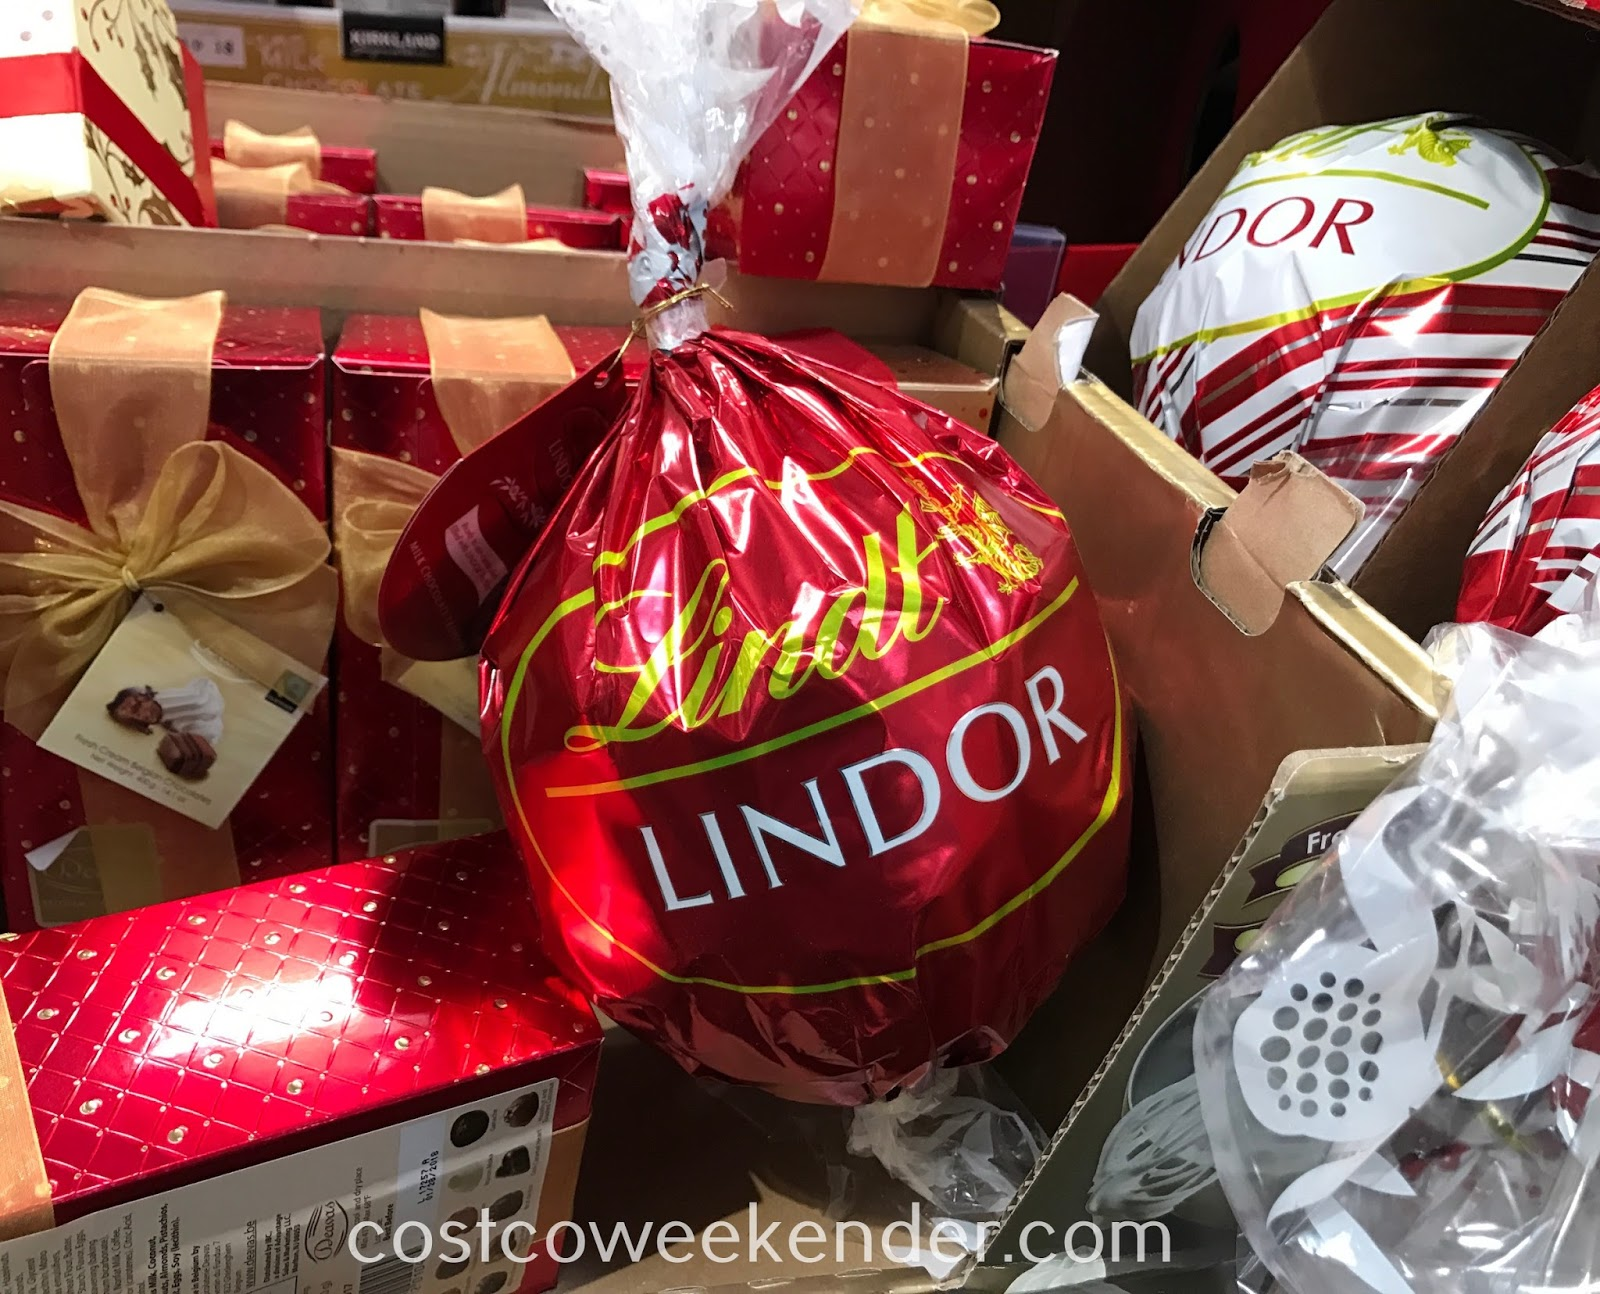 Satisfy your sweet tooth with Lindt Lindor Milk Chocolate Truffles